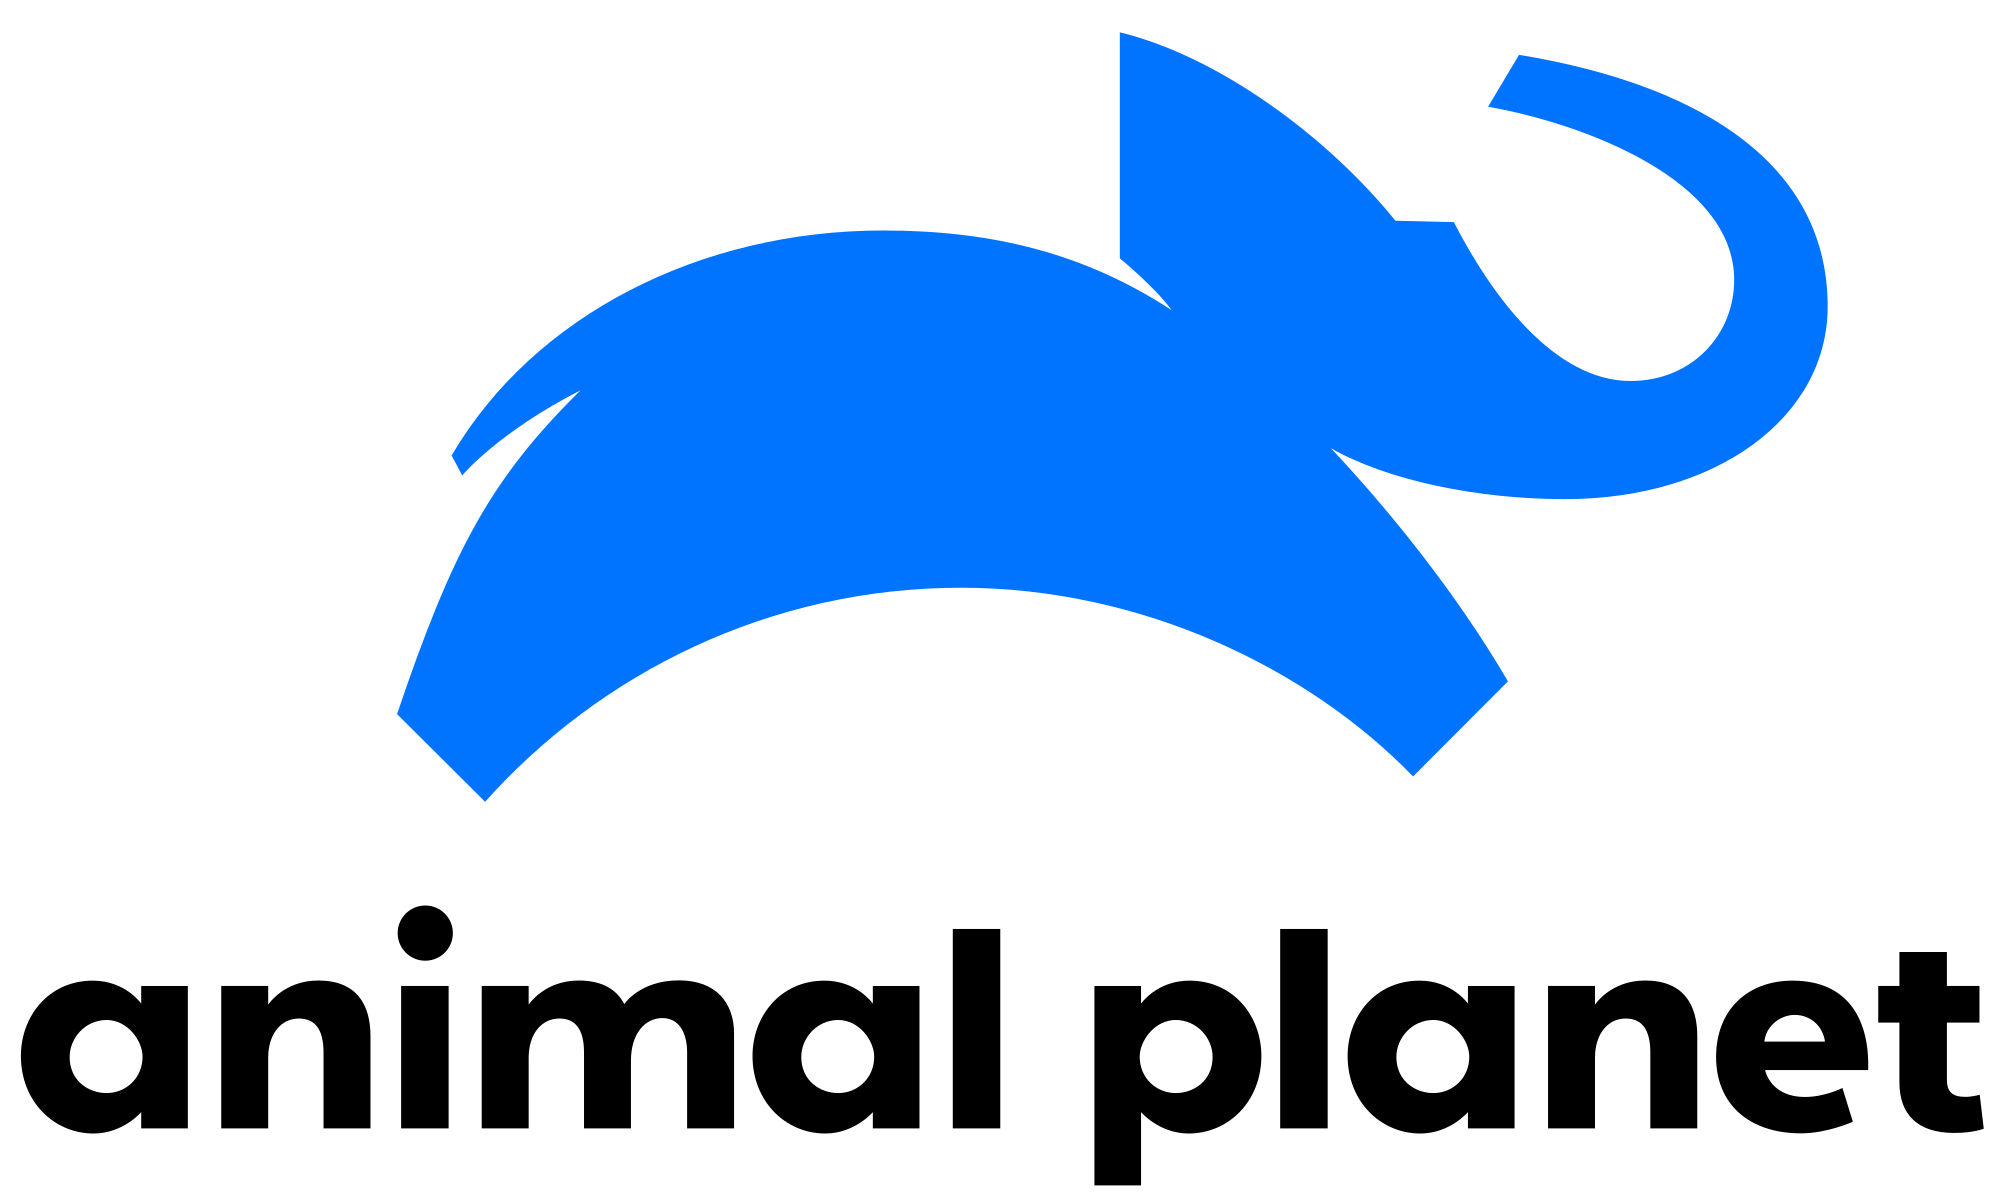 Animal planet logo png. File svg wikimedia commons